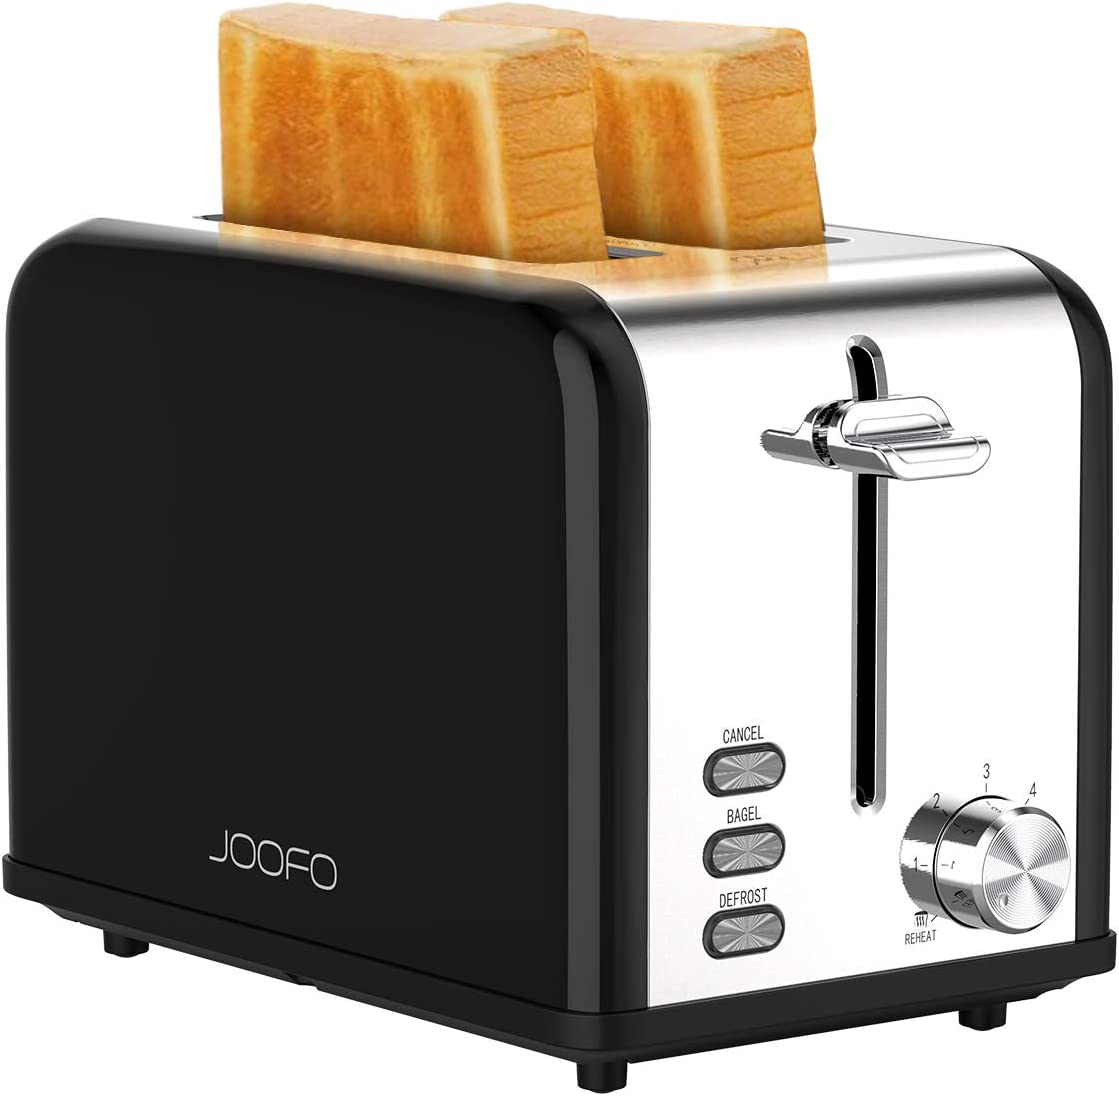 JOOFO 2 Slice Stainless Steel toaster,6 Shade Settings Extra-Wide Slot Toaster with Bagel, Cancel, Defrost,Reheat Function  Removable Crumb Tray (2 Slice, Black)